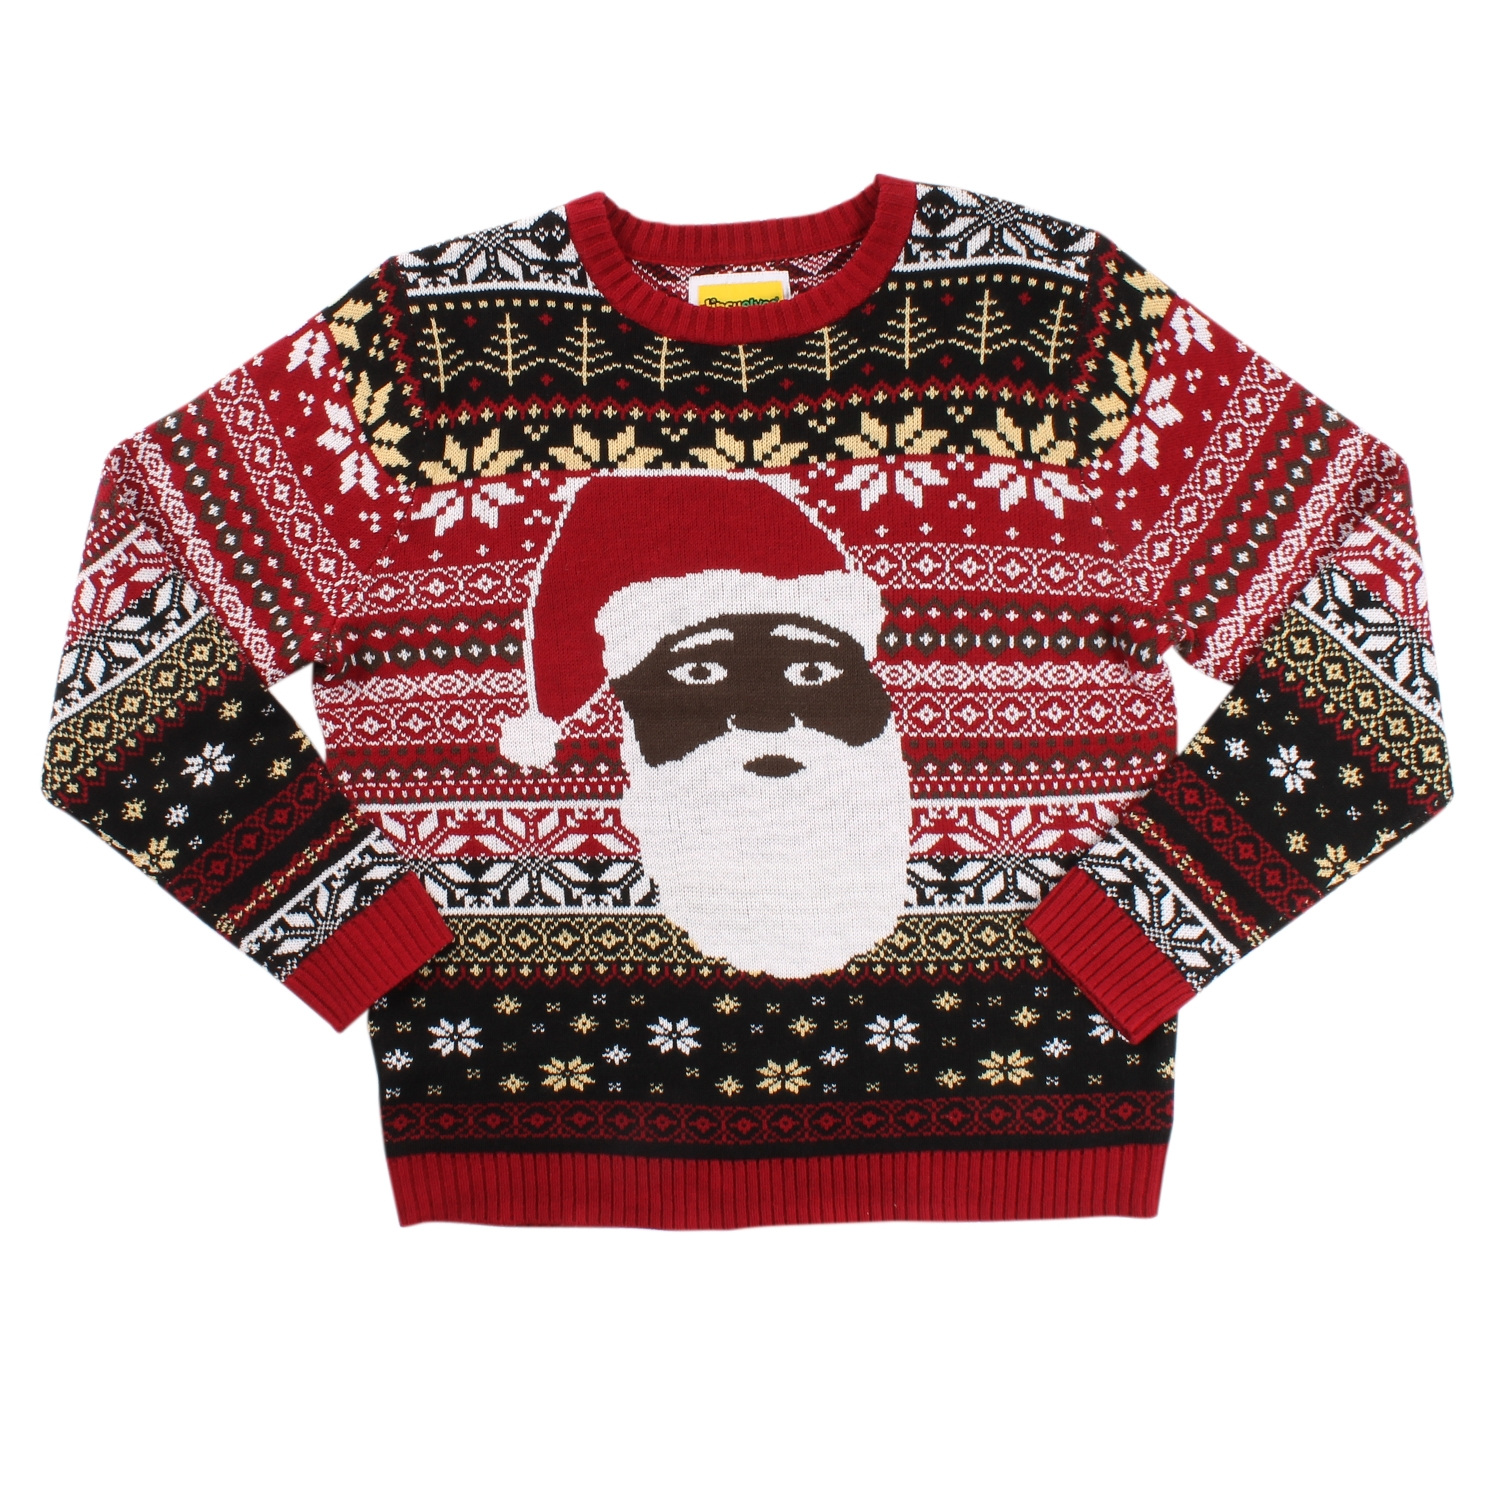 The Night Befor Black Santa Christmas Sweater